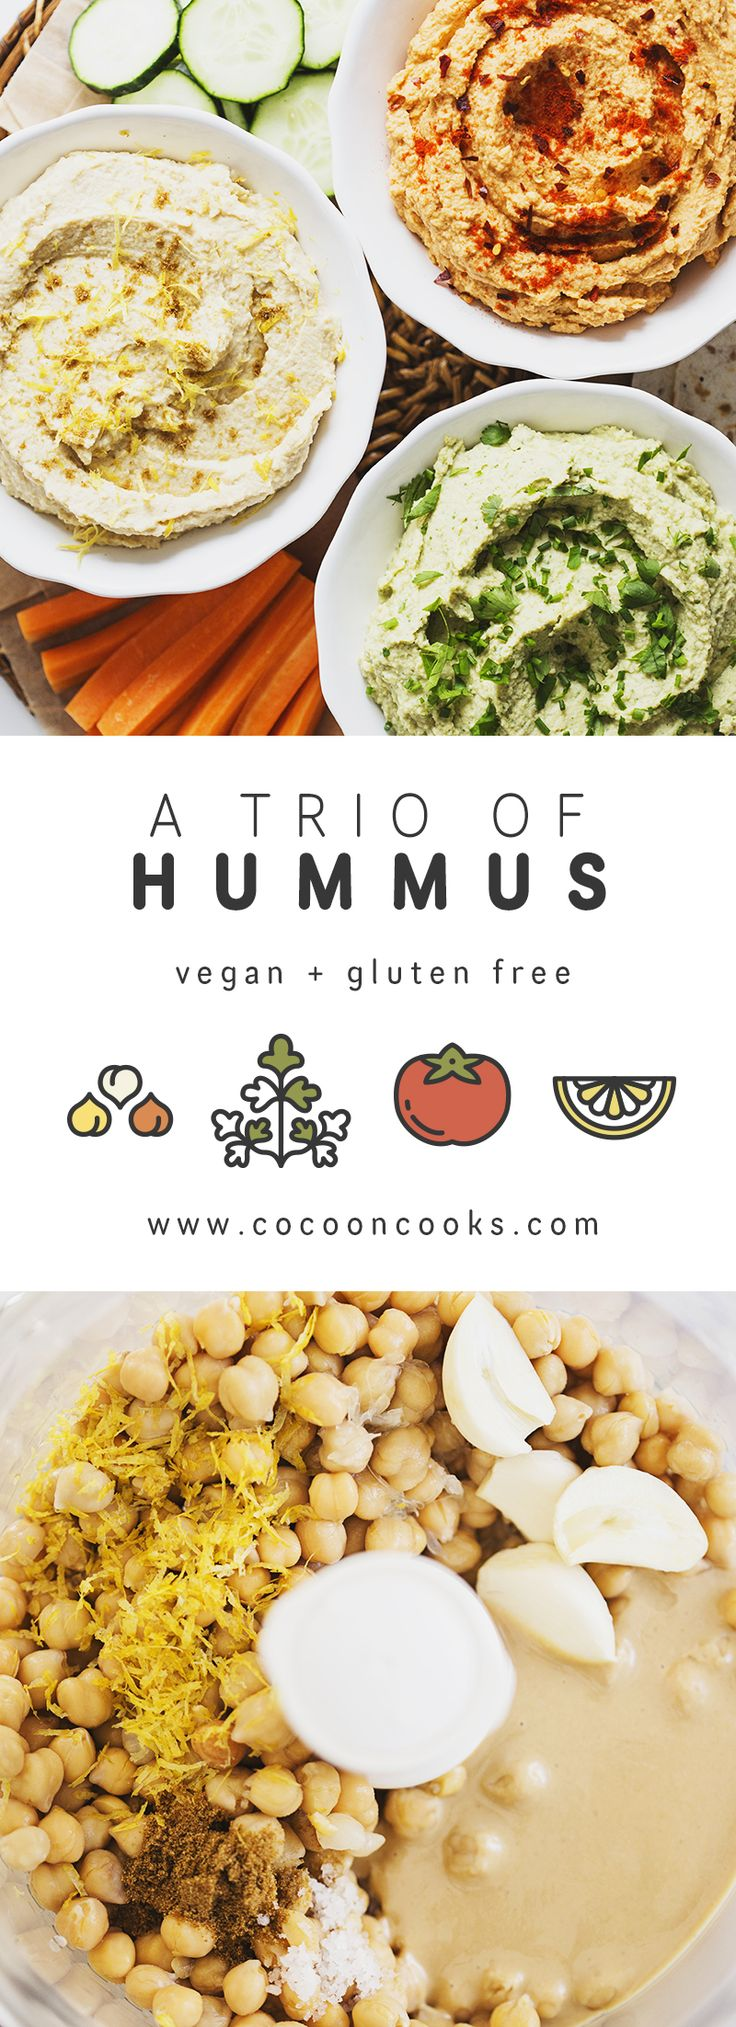 Three healthy, vegan & delicious recipes to please the Hummus-lover in us all! #easy #vegan #recipe | healthy recipe ideas @xhealthyrecipex |